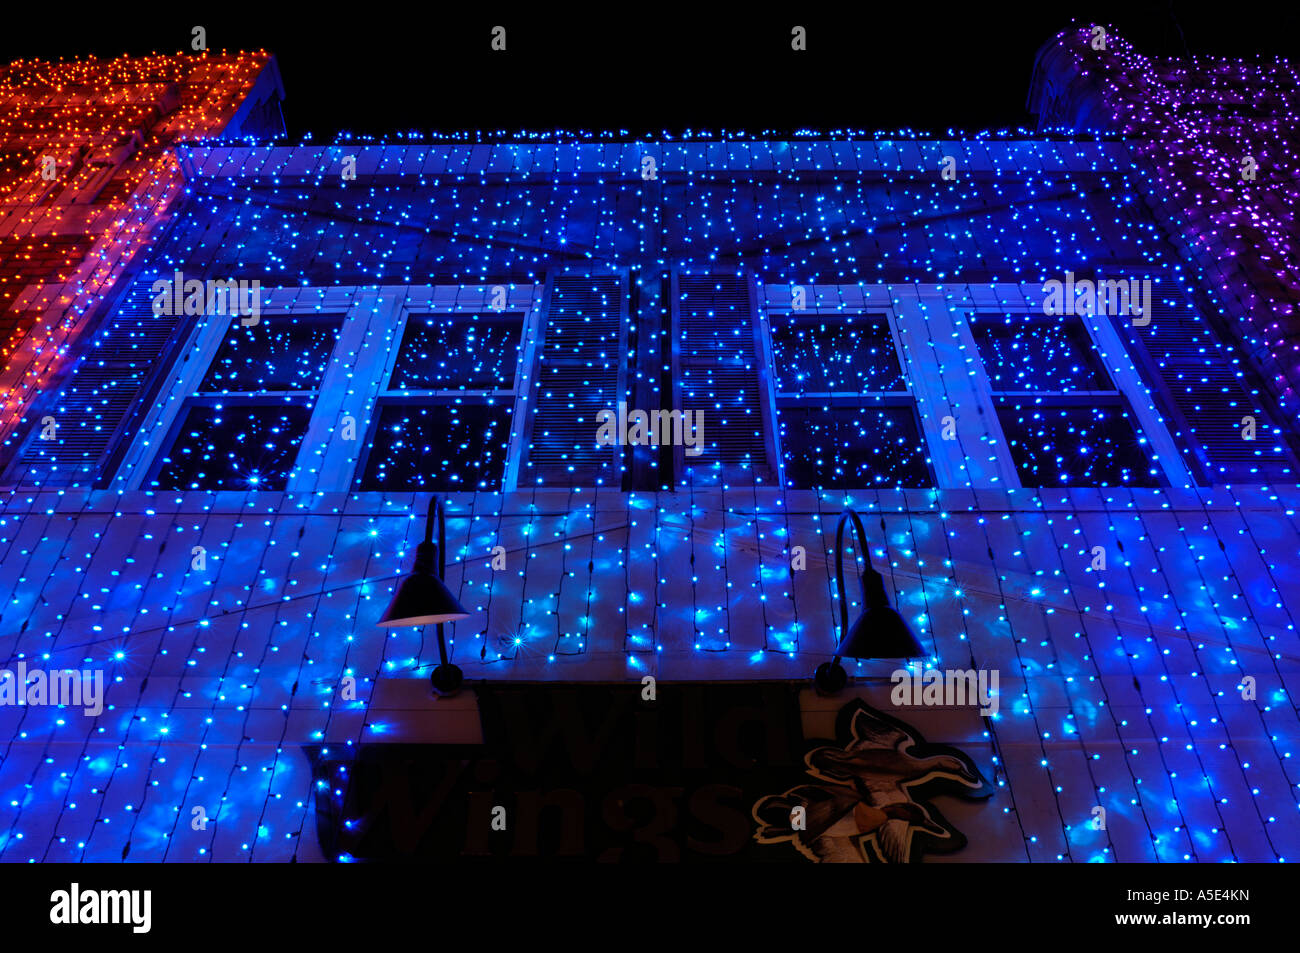 Christmas Lights On A Building During The Big Bright Lights Show In  Rochester Michigan USA